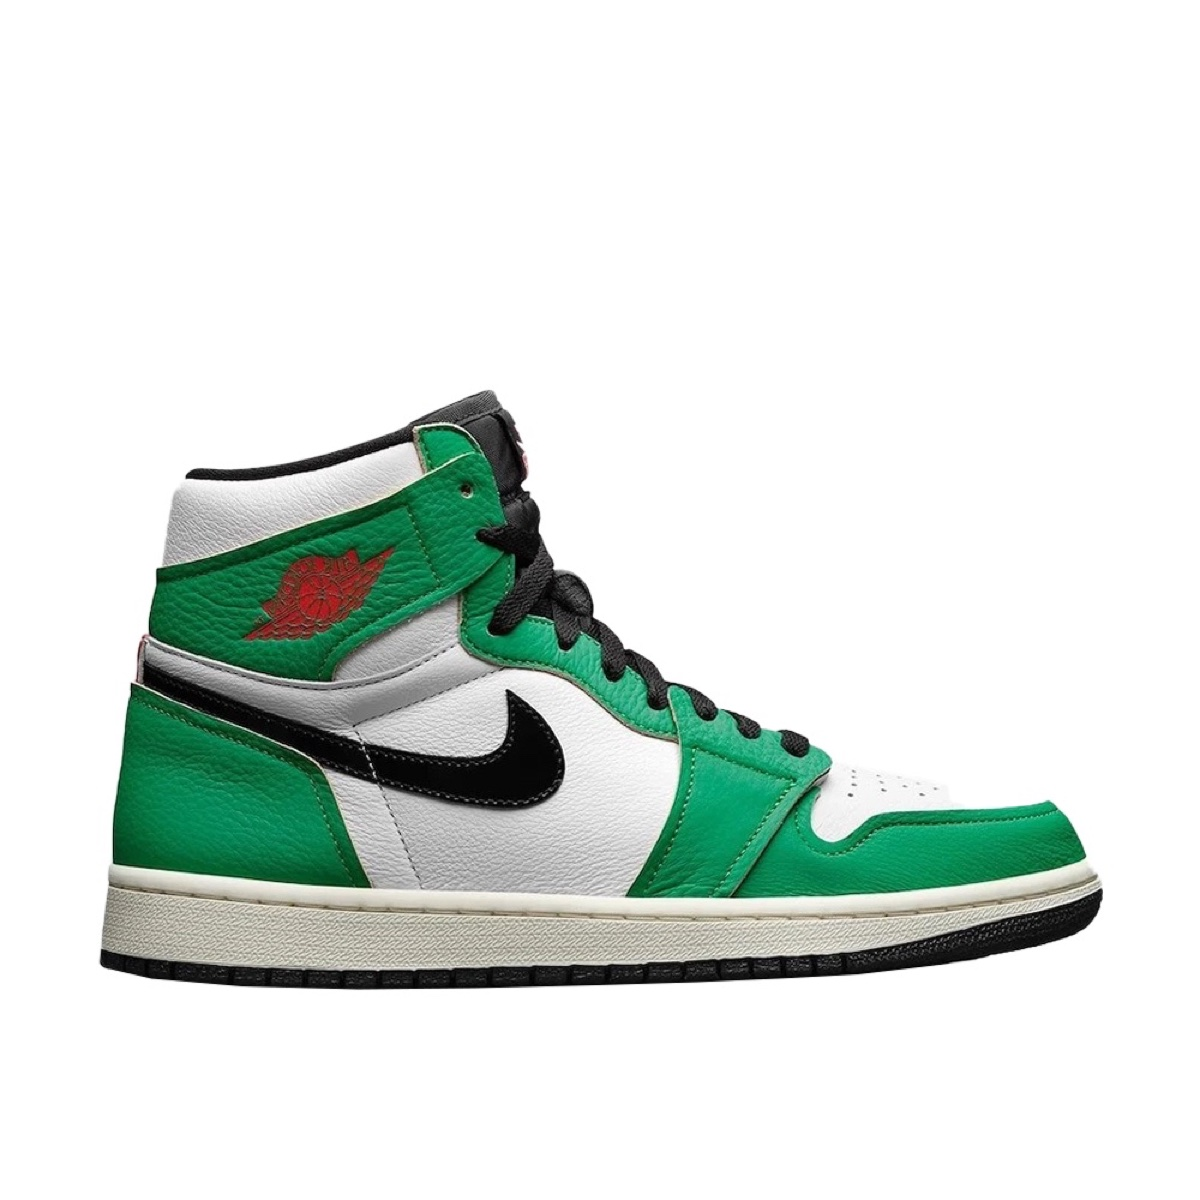 Jordan 1 High Og Lucky Green